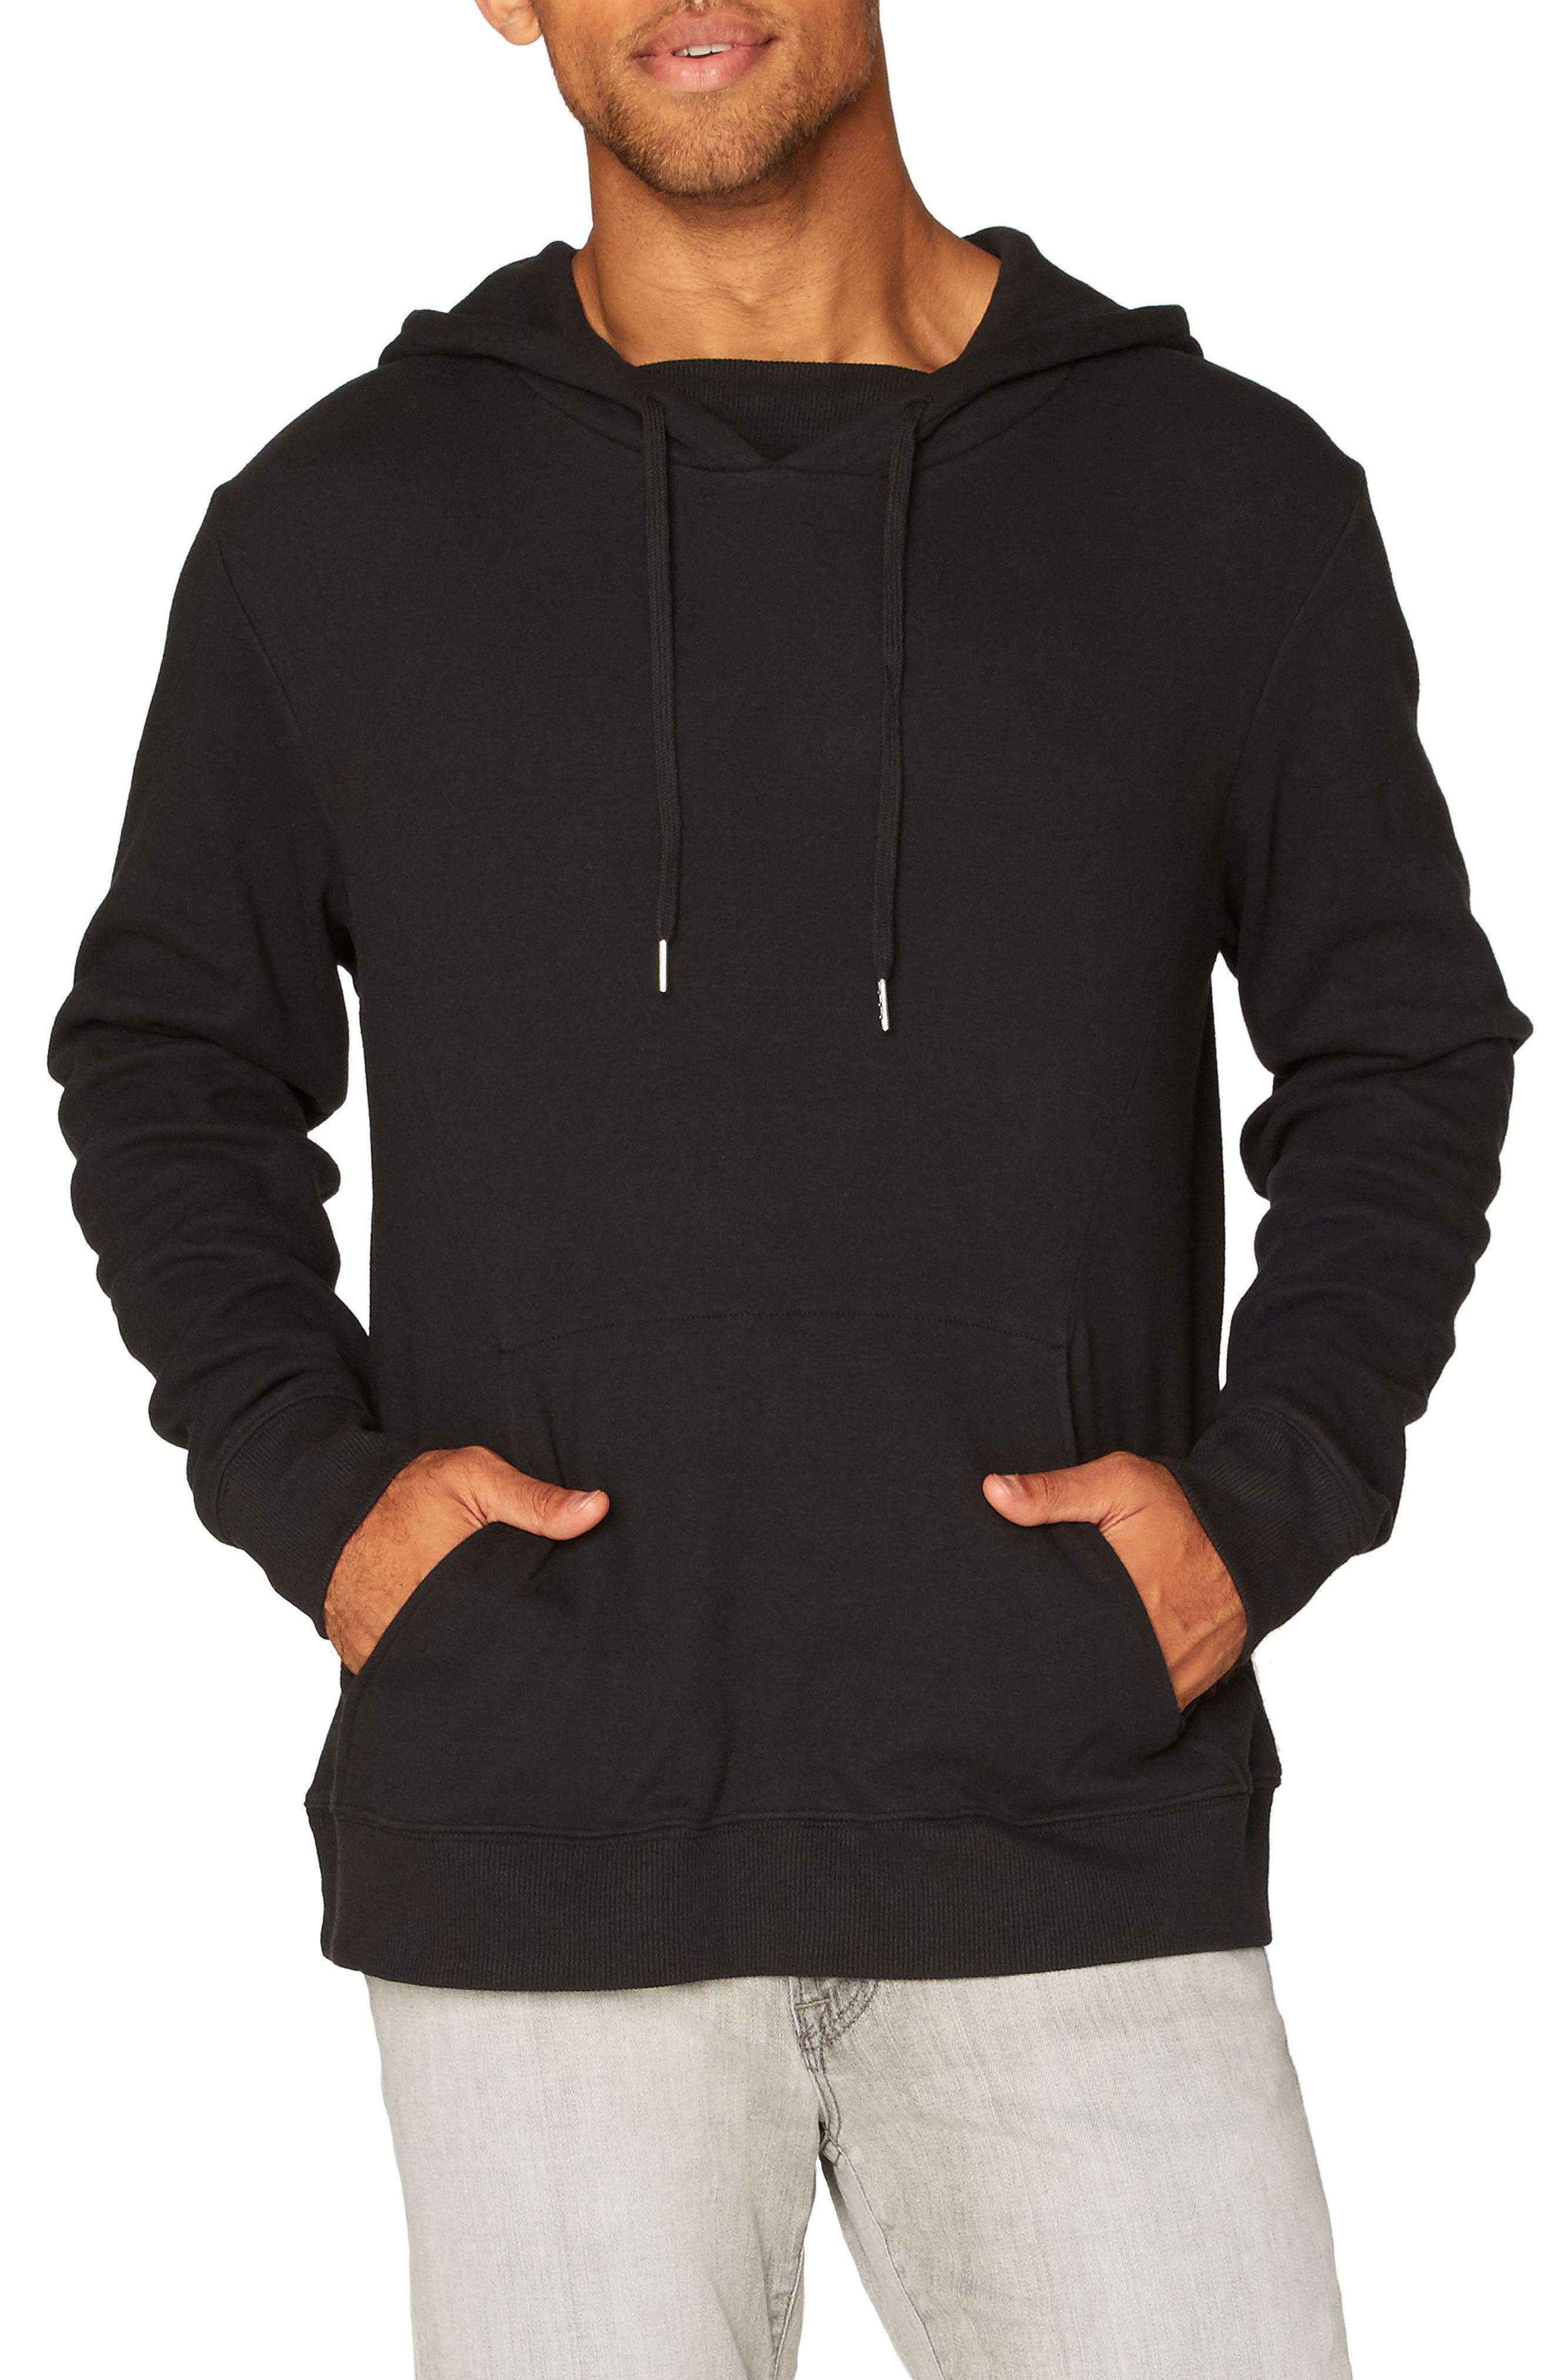 Vance Fleece Hoodie,                         Main,                         color, Black